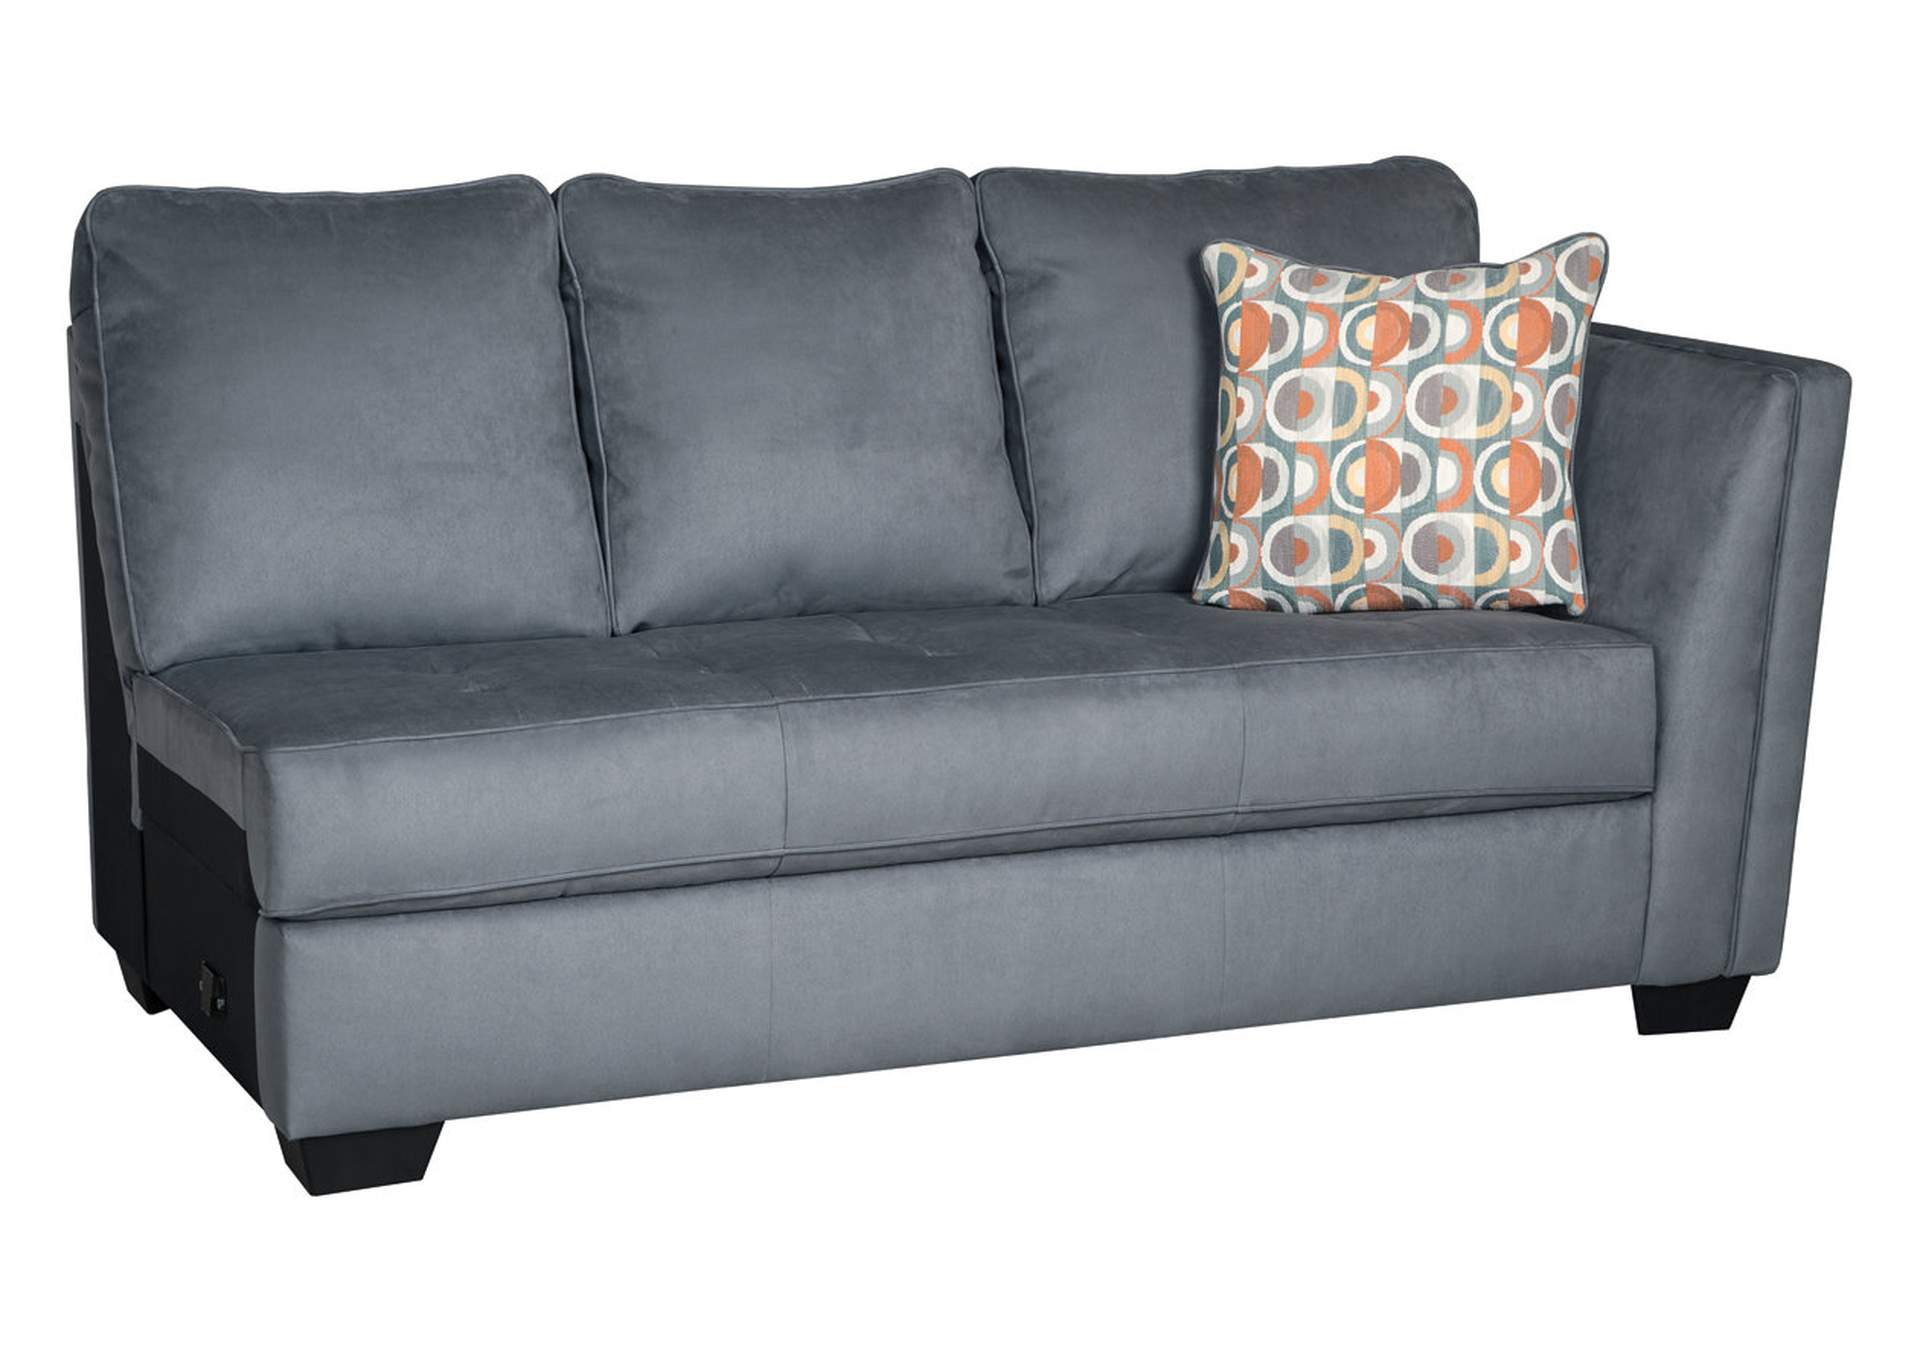 Filone Steel RAF Sofa Chaise,Signature Design By Ashley